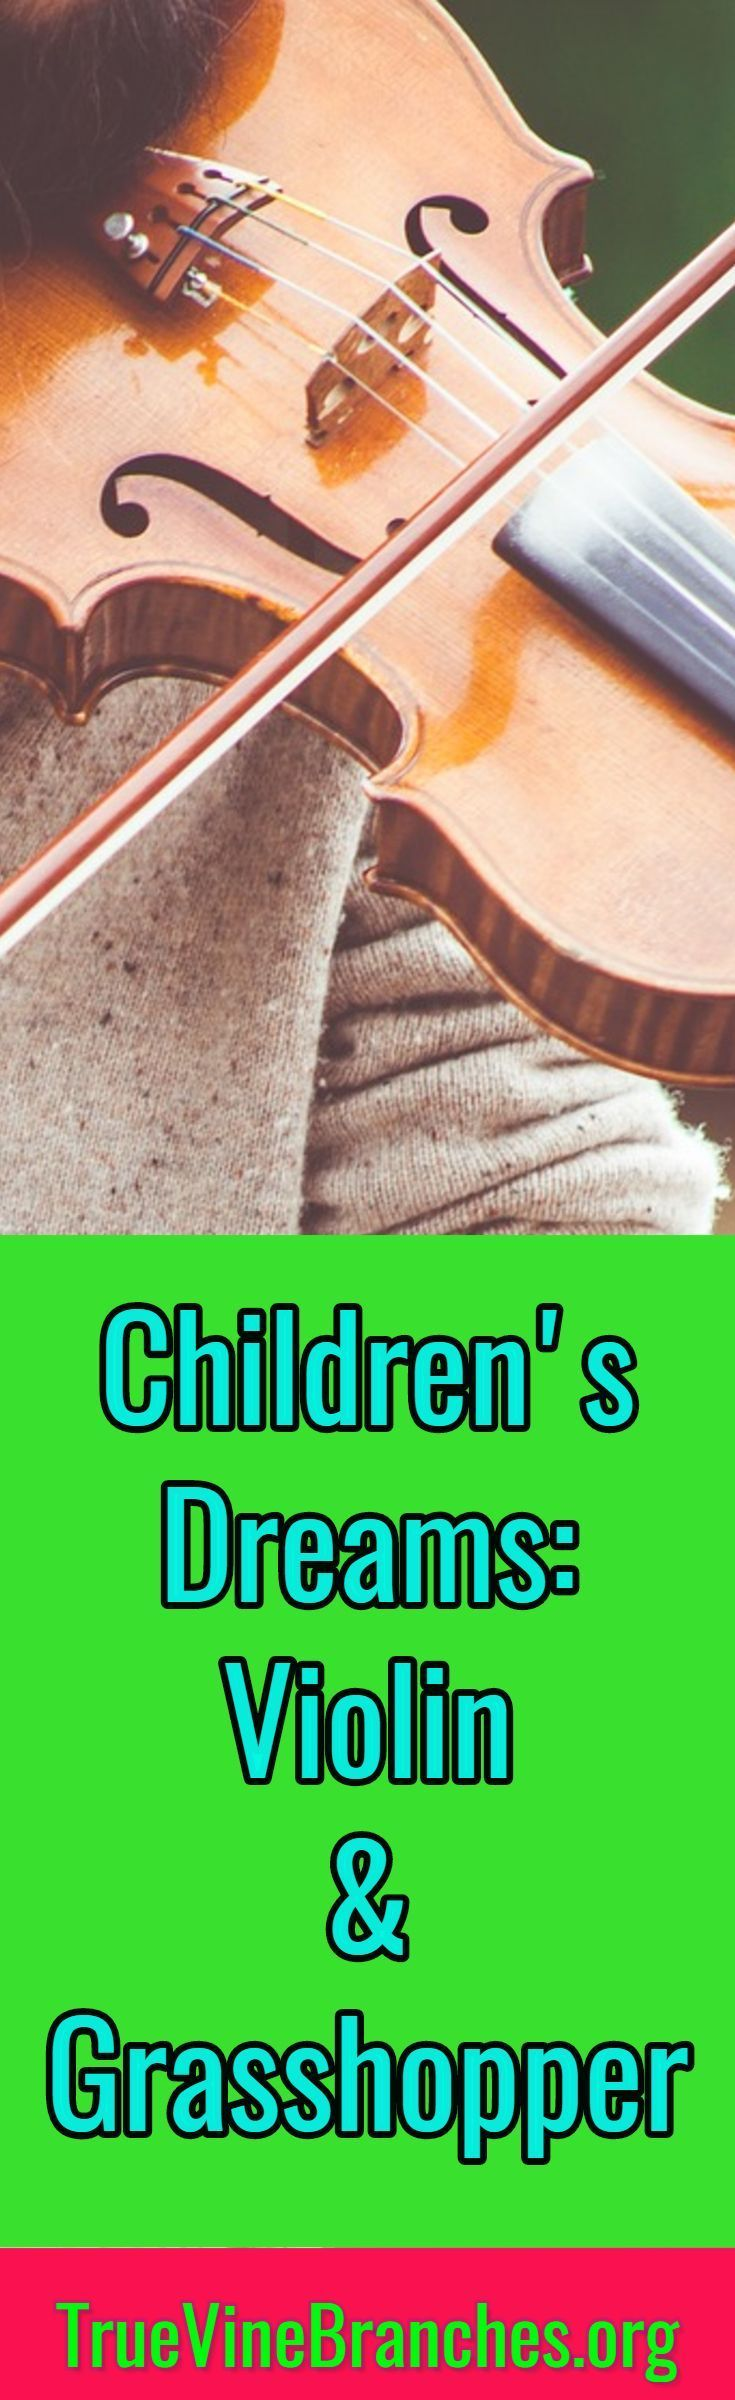 Learn how to interpret biblical dreams. Read a real dream and the interpretation given as it relates to violins and grasshoppers. Biblical dream interpretation, hearing God's voice, prayer, faith, hope, love, inspiration, encouragement.